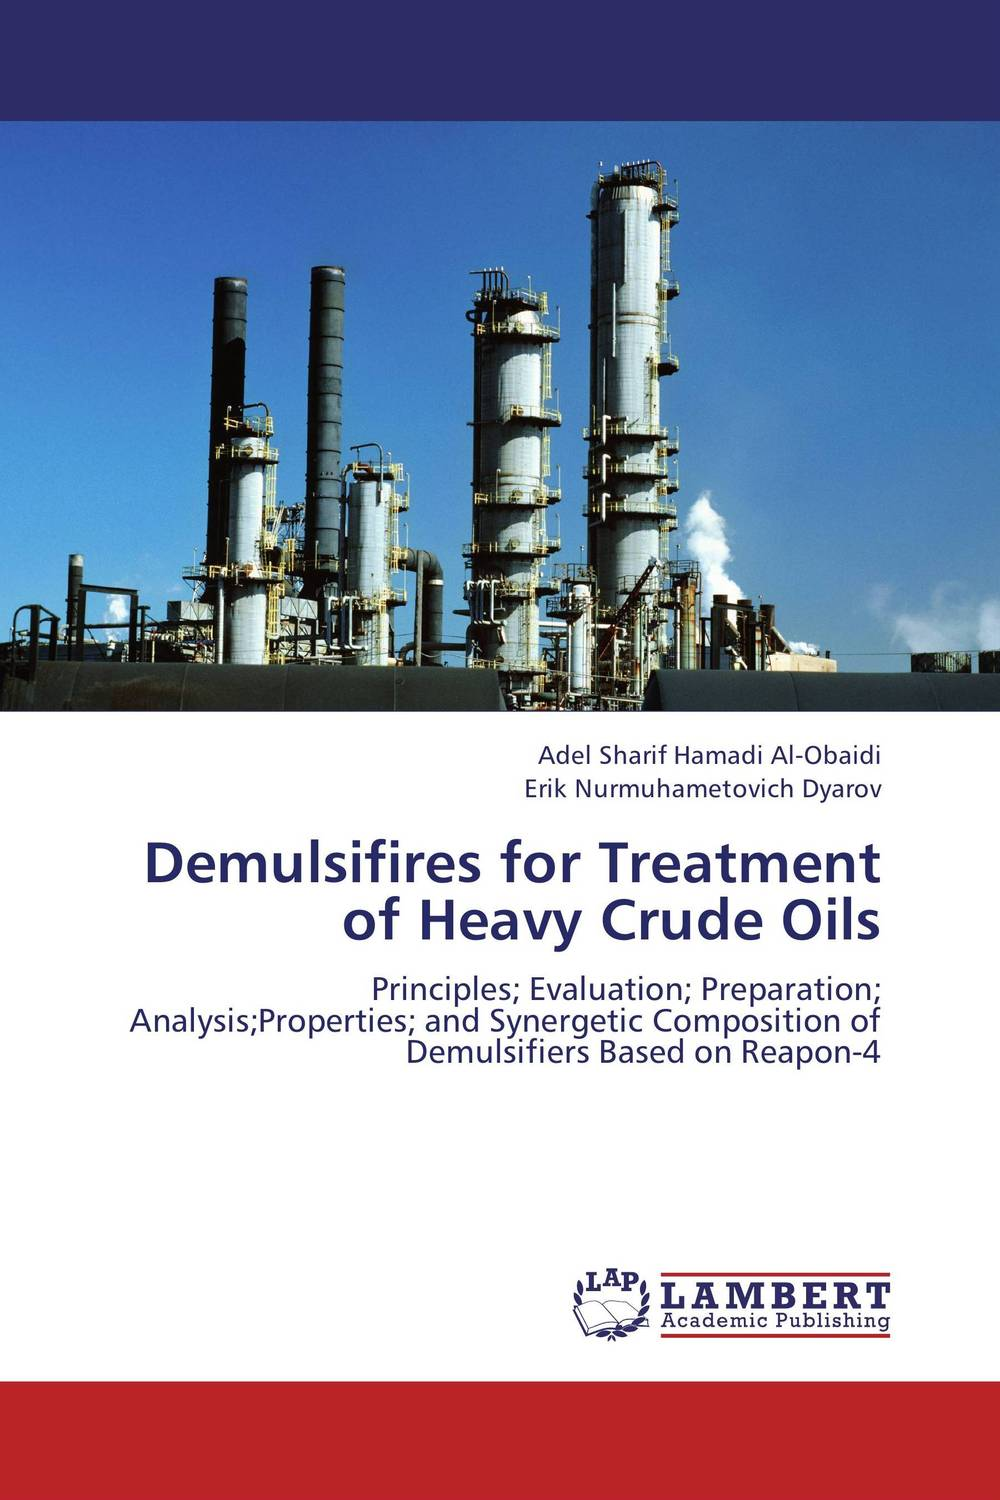 Demulsifires for Treatment of Heavy Crude Oils dearomatization of crude oil